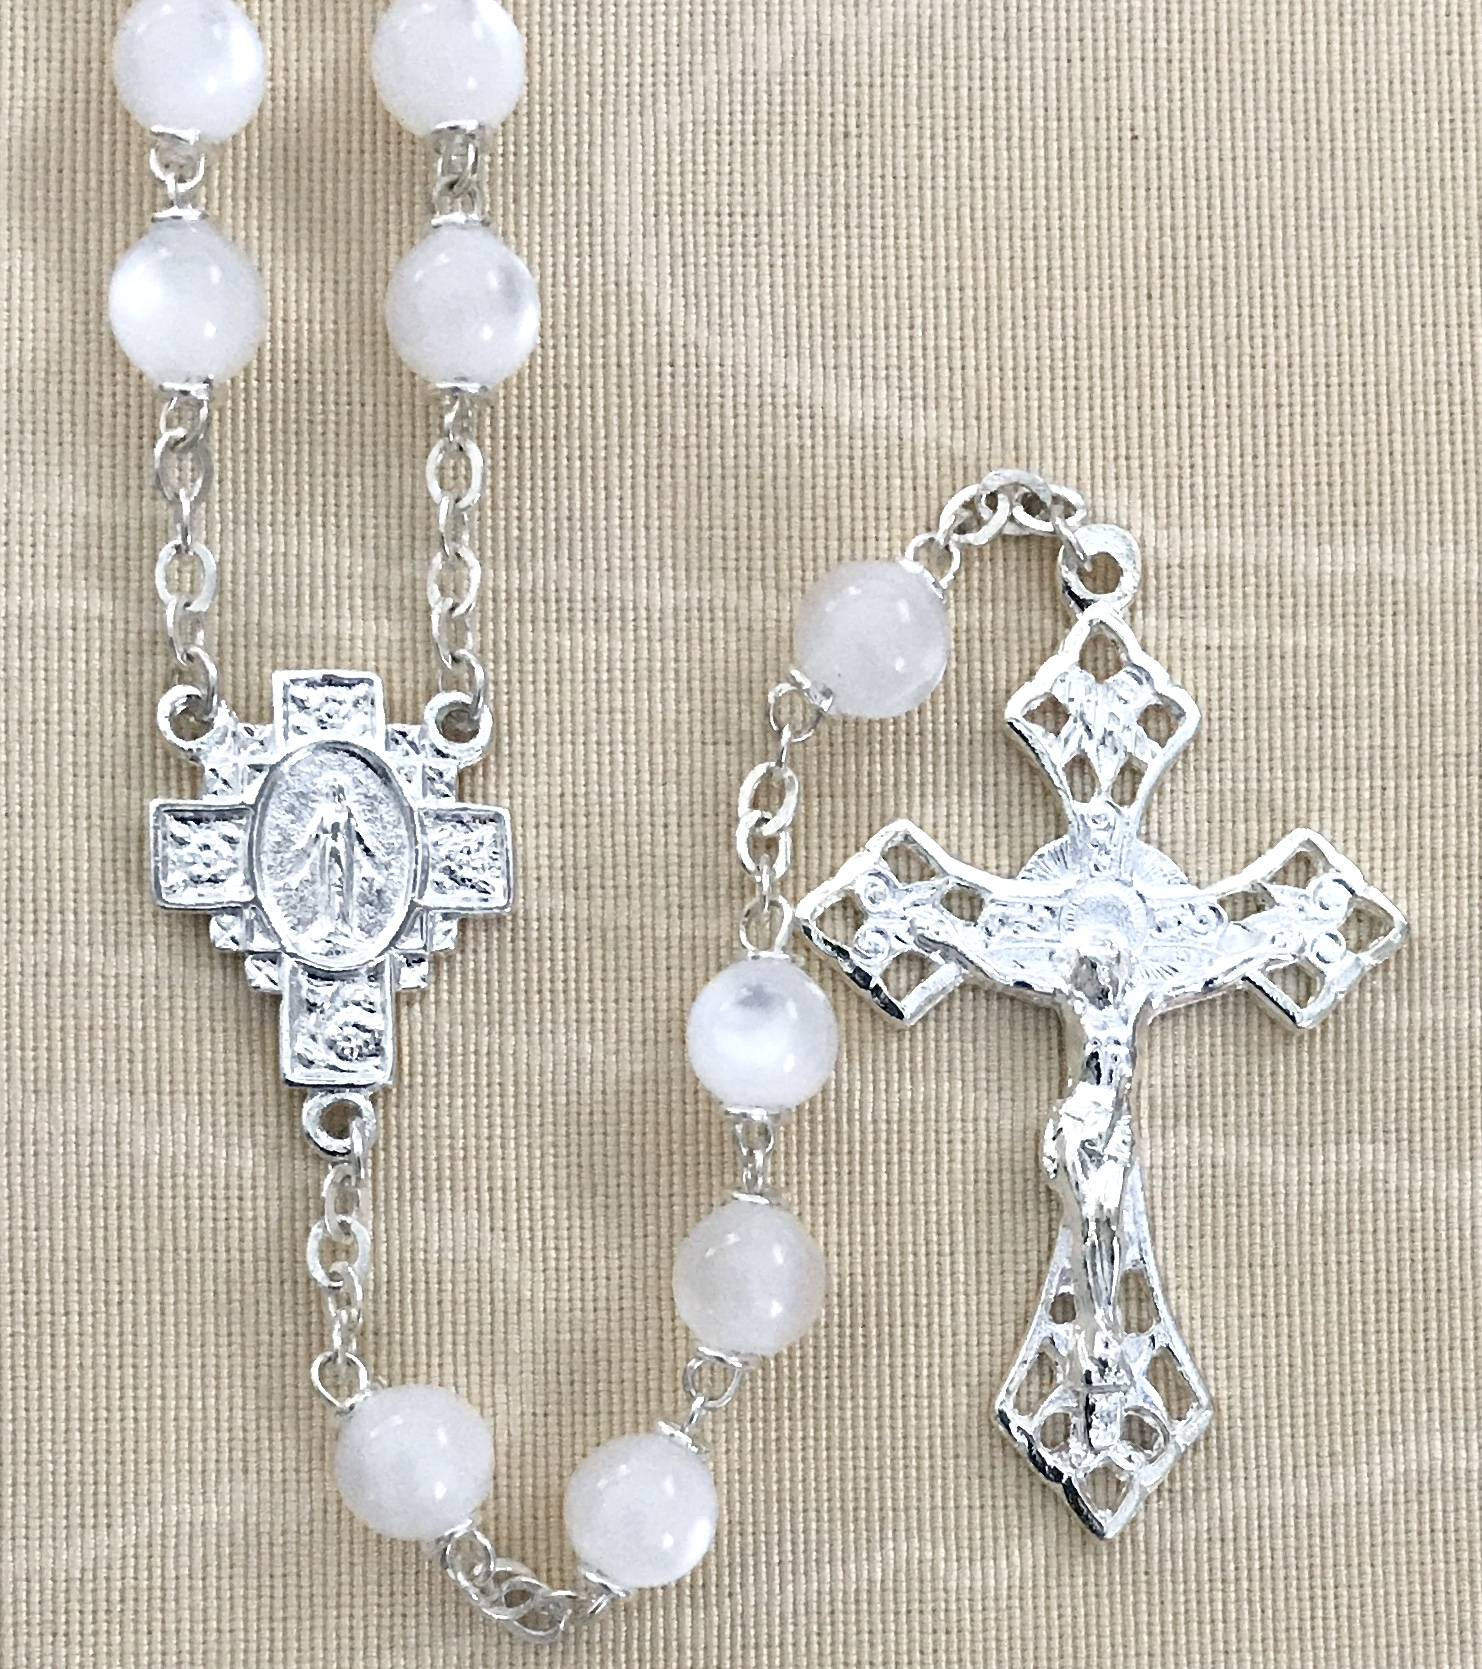 7mm WHITE PEARL LOC-LINK ROSARY WITH STERLING SILVER PLATED CRUCIFIX AND CENTER GIFT BOXED